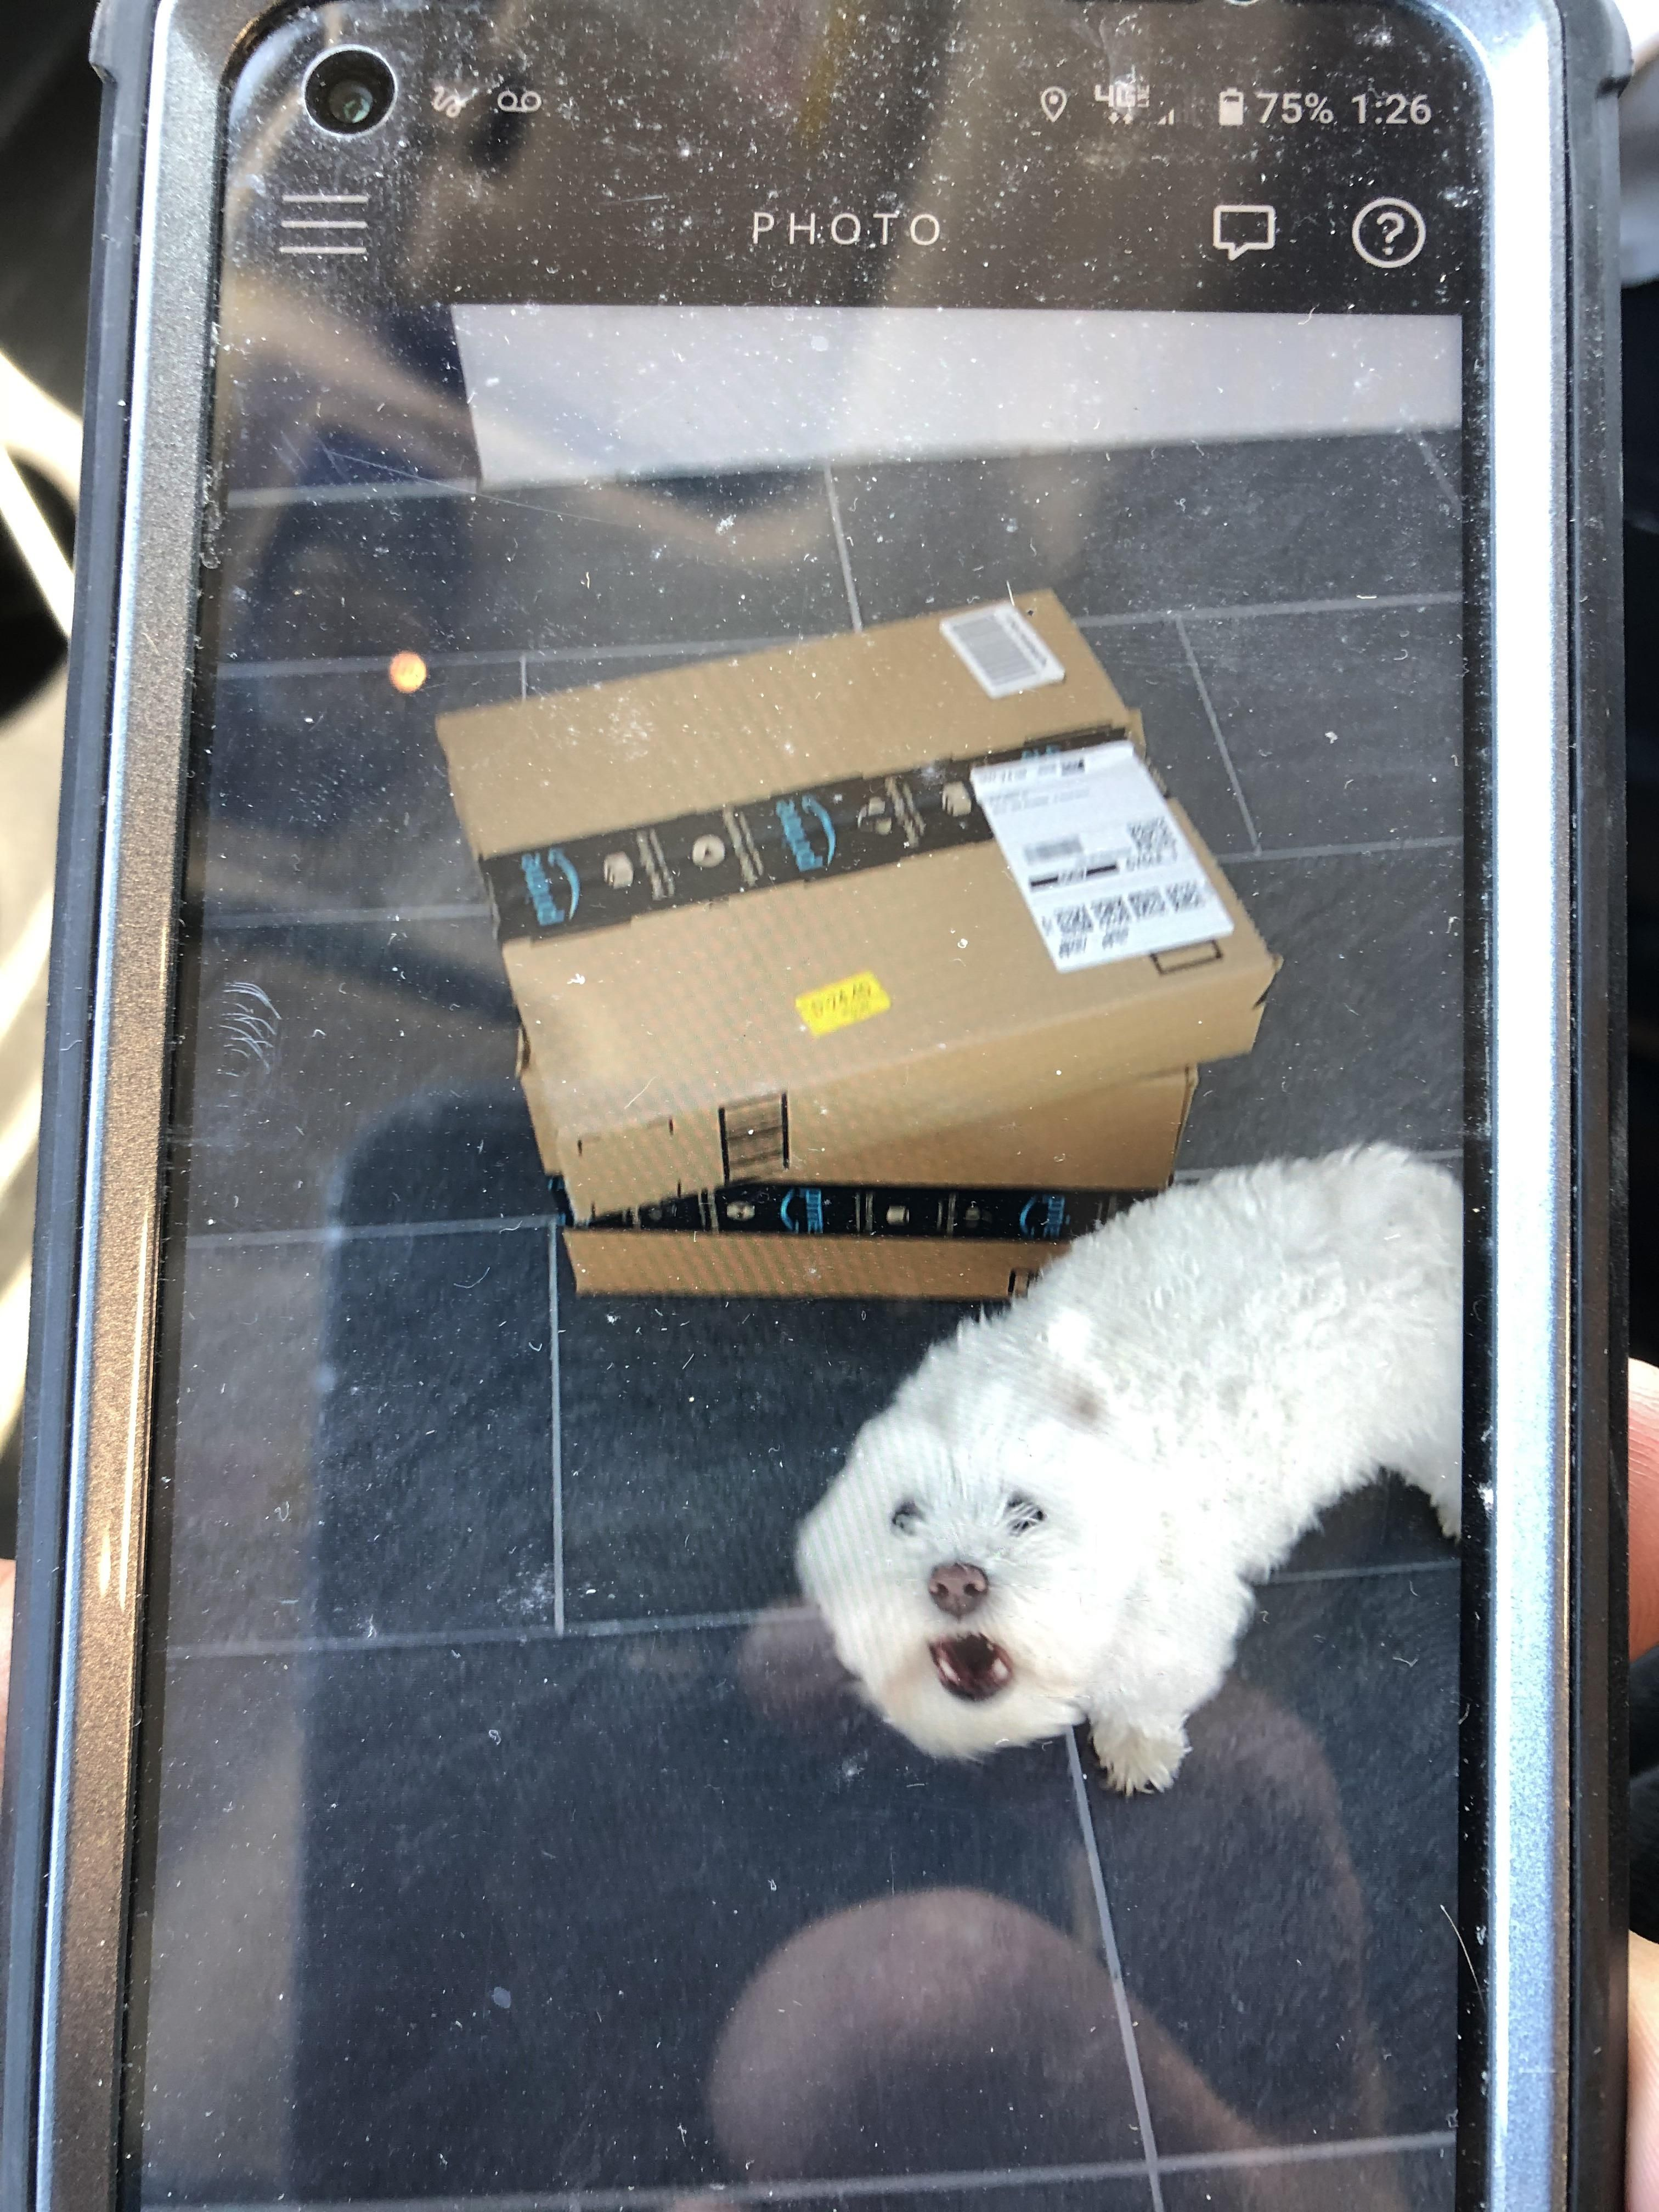 A vicious guard dog attacked me on my Amazon delivery today